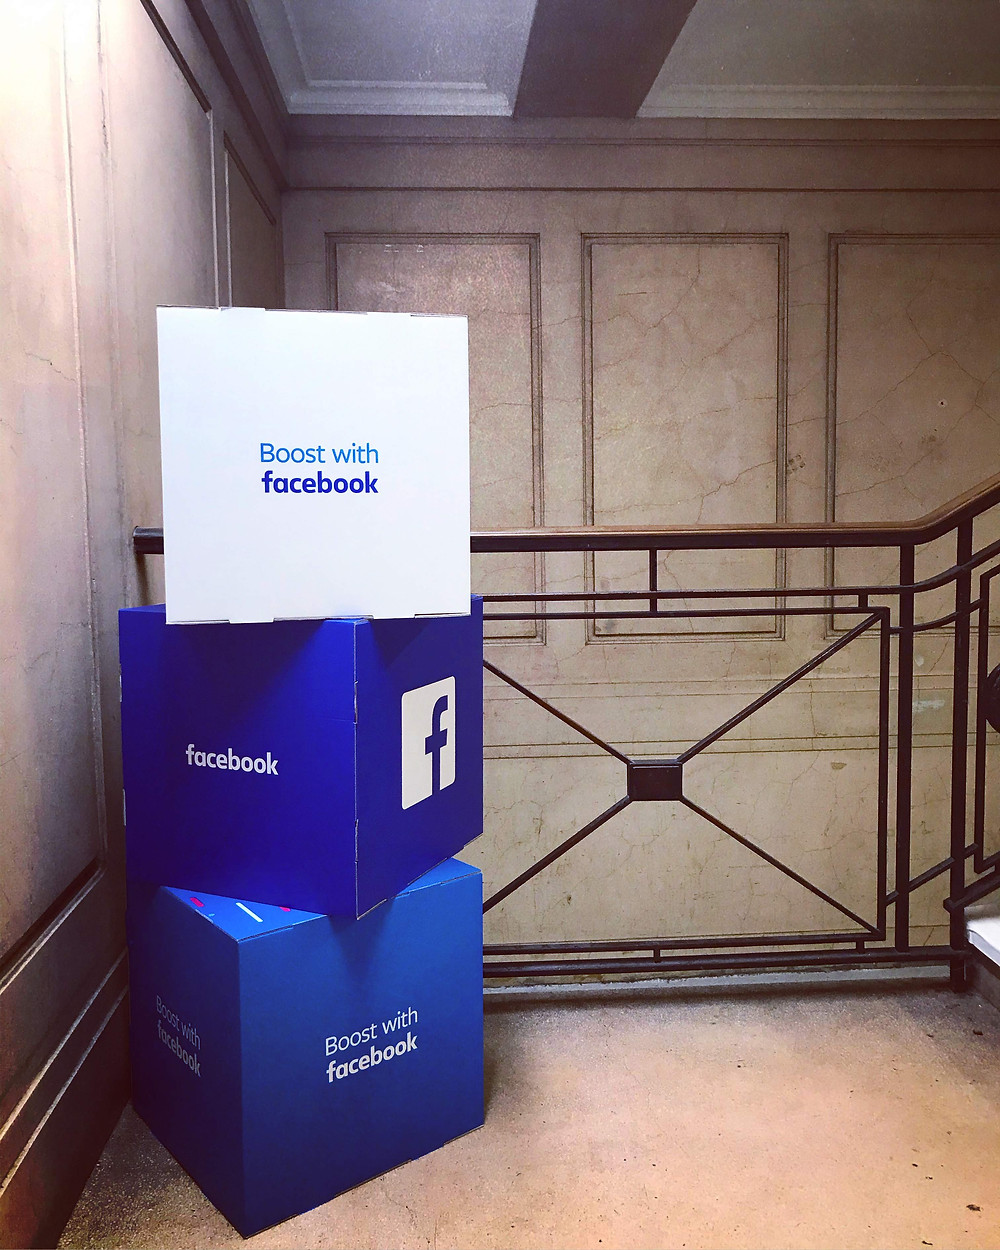 Networking, events, Facebook, Boost with Facebook